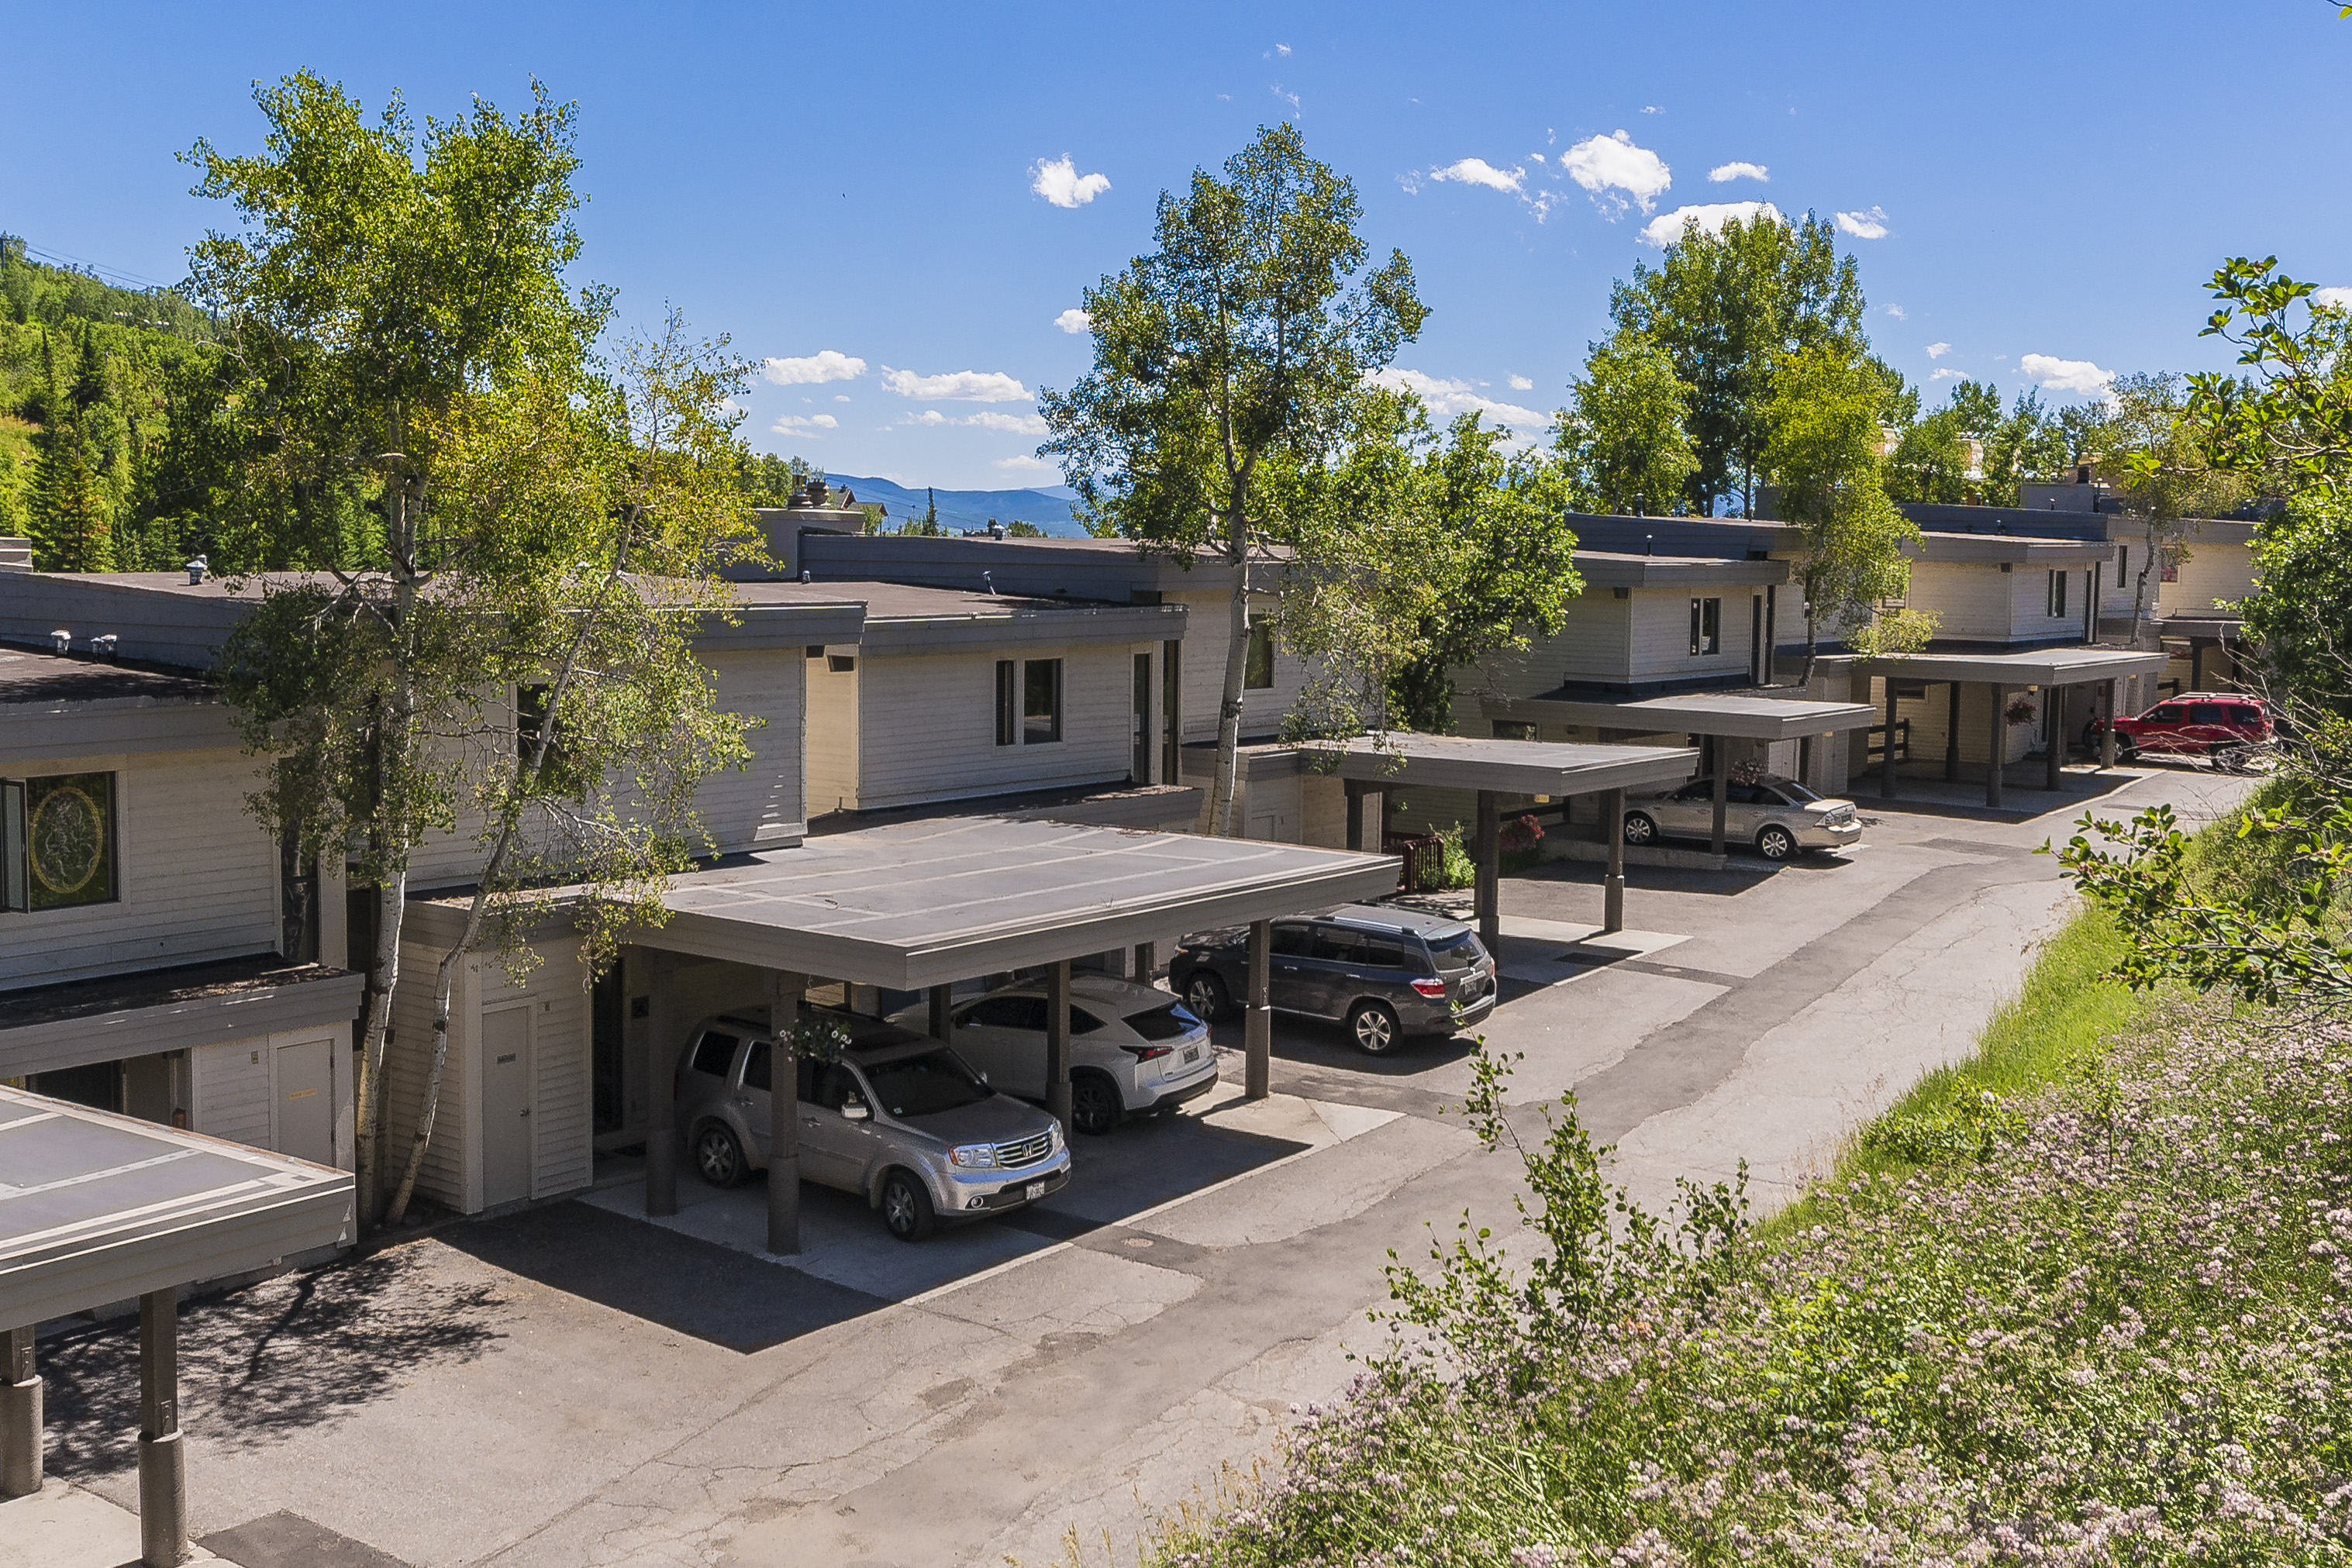 Townhouse for Sale at Storm Meadows Townhome 2415 Storm Meadows Drive #9 Steamboat Springs, Colorado, 80487 United States